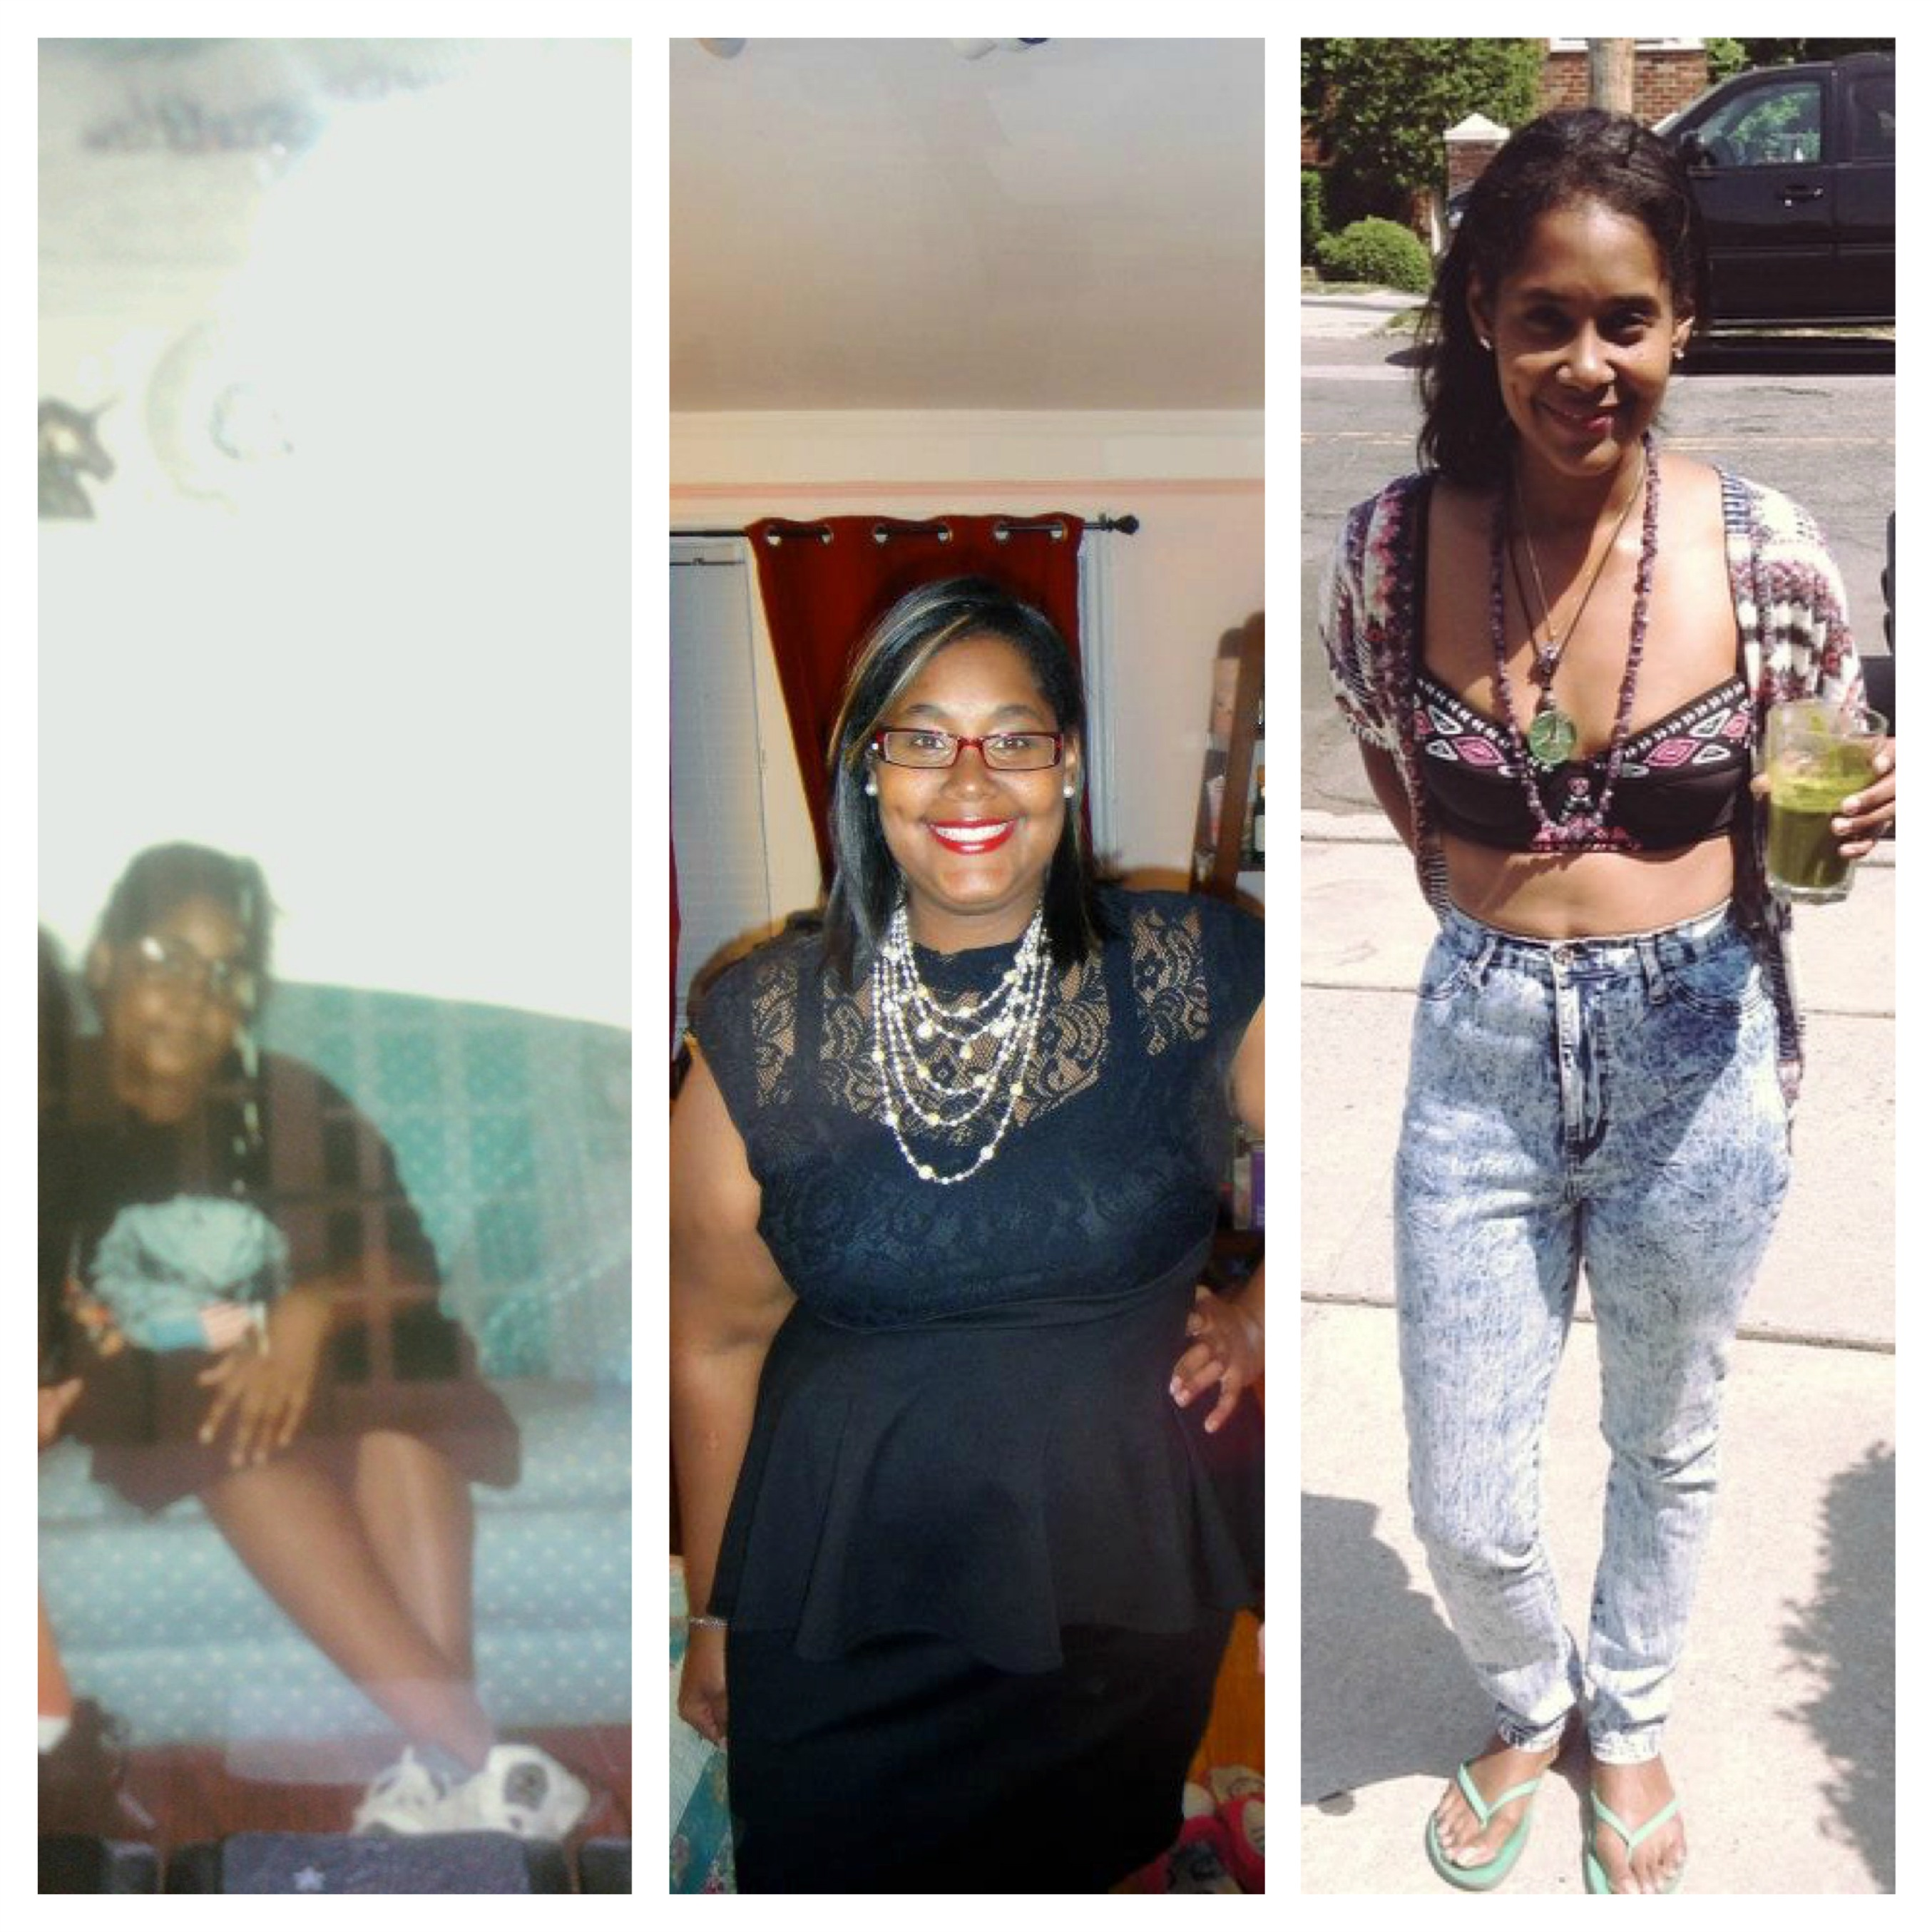 I lost 120 pounds eating vegan! Read my plant based weight loss transformation success story with before and after pictures along with more pics for motivation. My challenge was fast easy vegetarian meals and healthy vegan weightloss diet recipes. Tips, results and articles can help you lose those first or last 10 pounds.